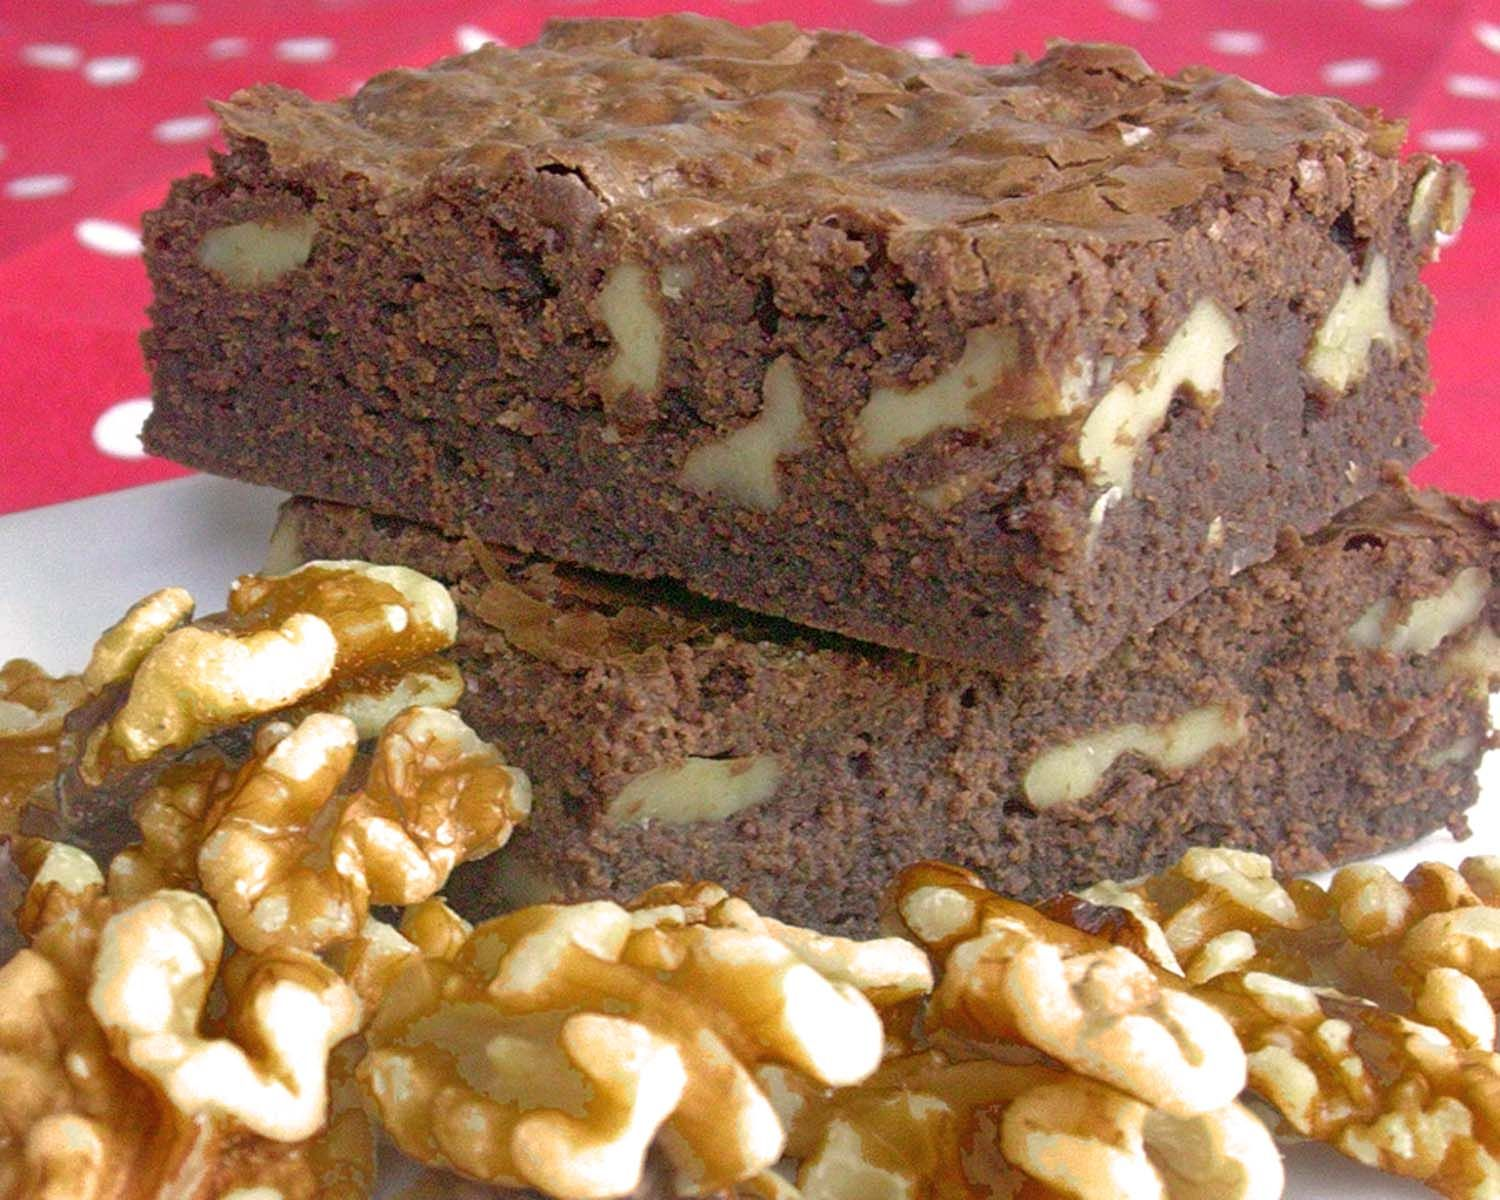 Receta de Brownies de chocolate con nueces